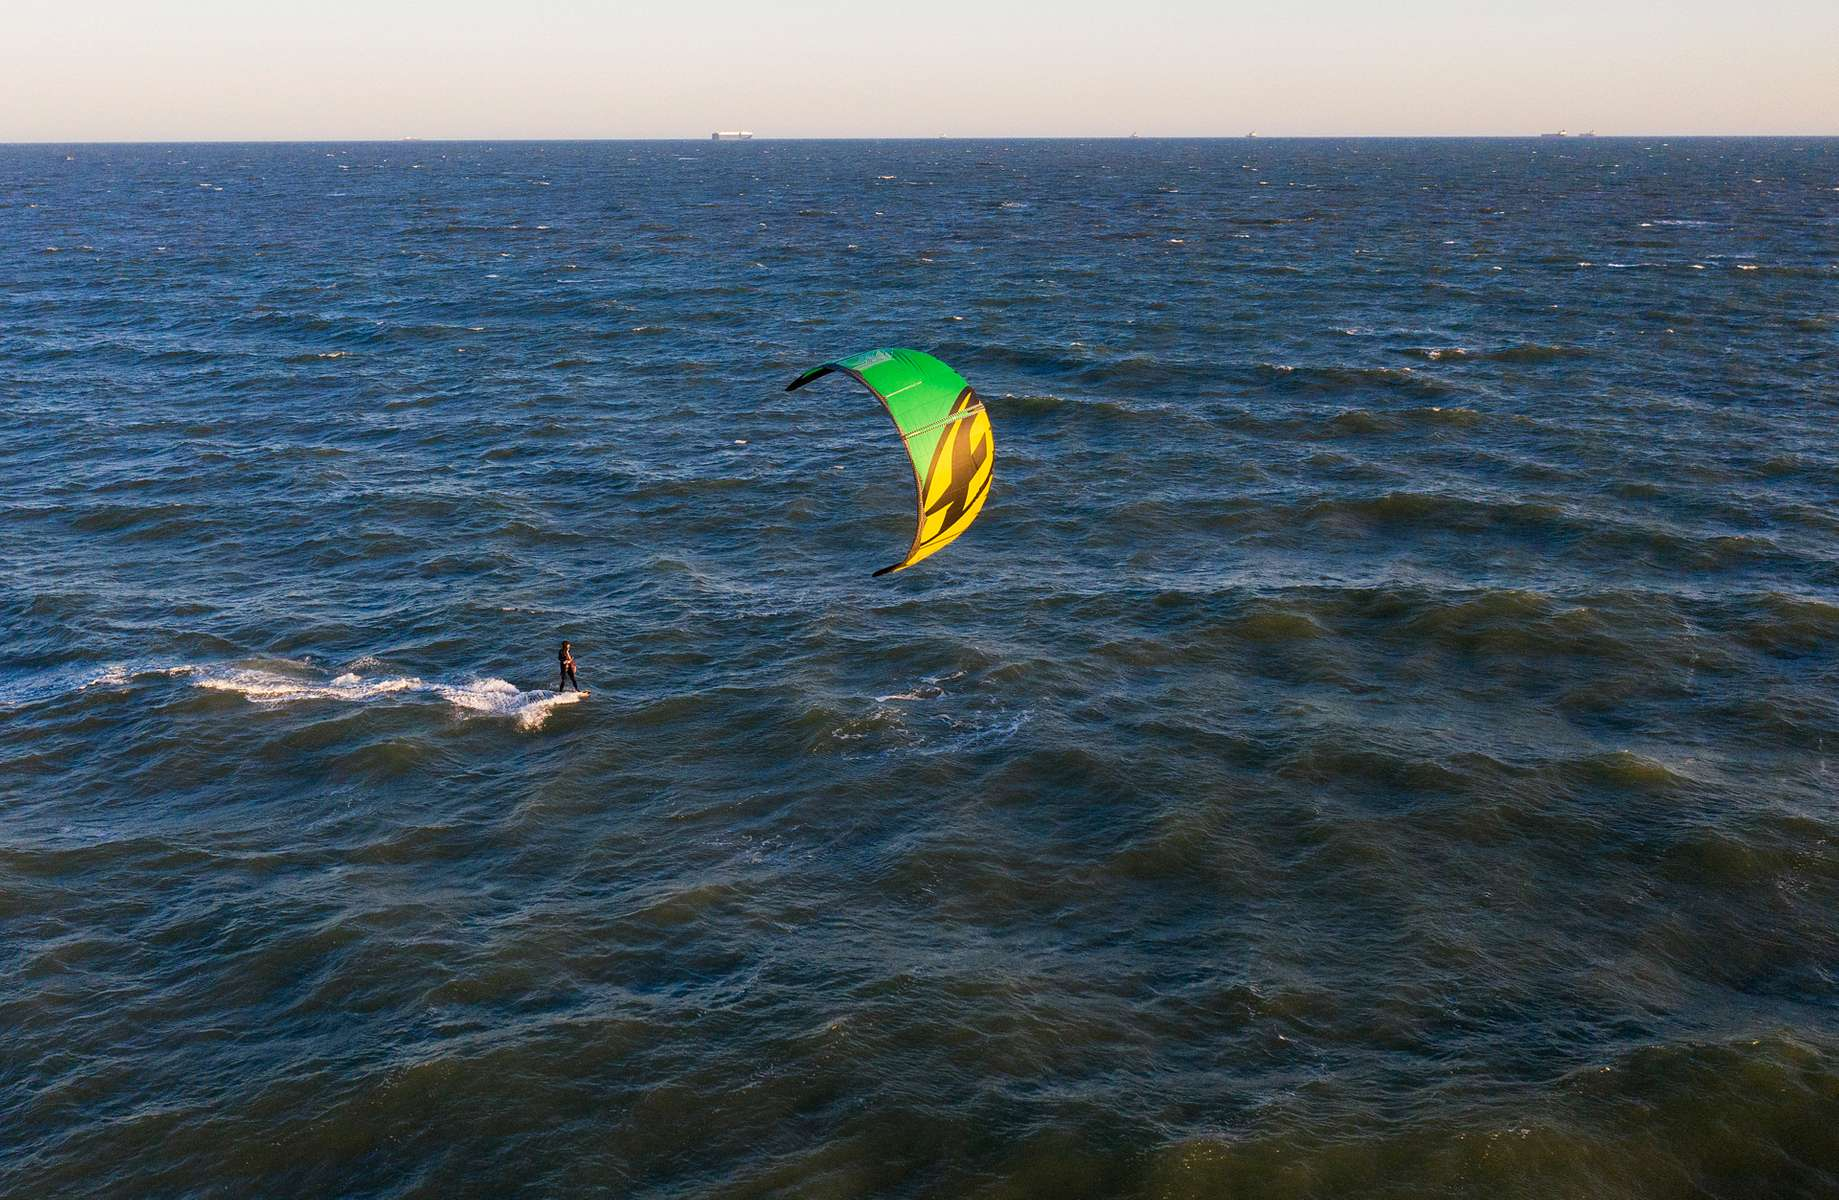 An Aerial view of a man kite surfing on May 07, 2020 in Long Beach, New York.